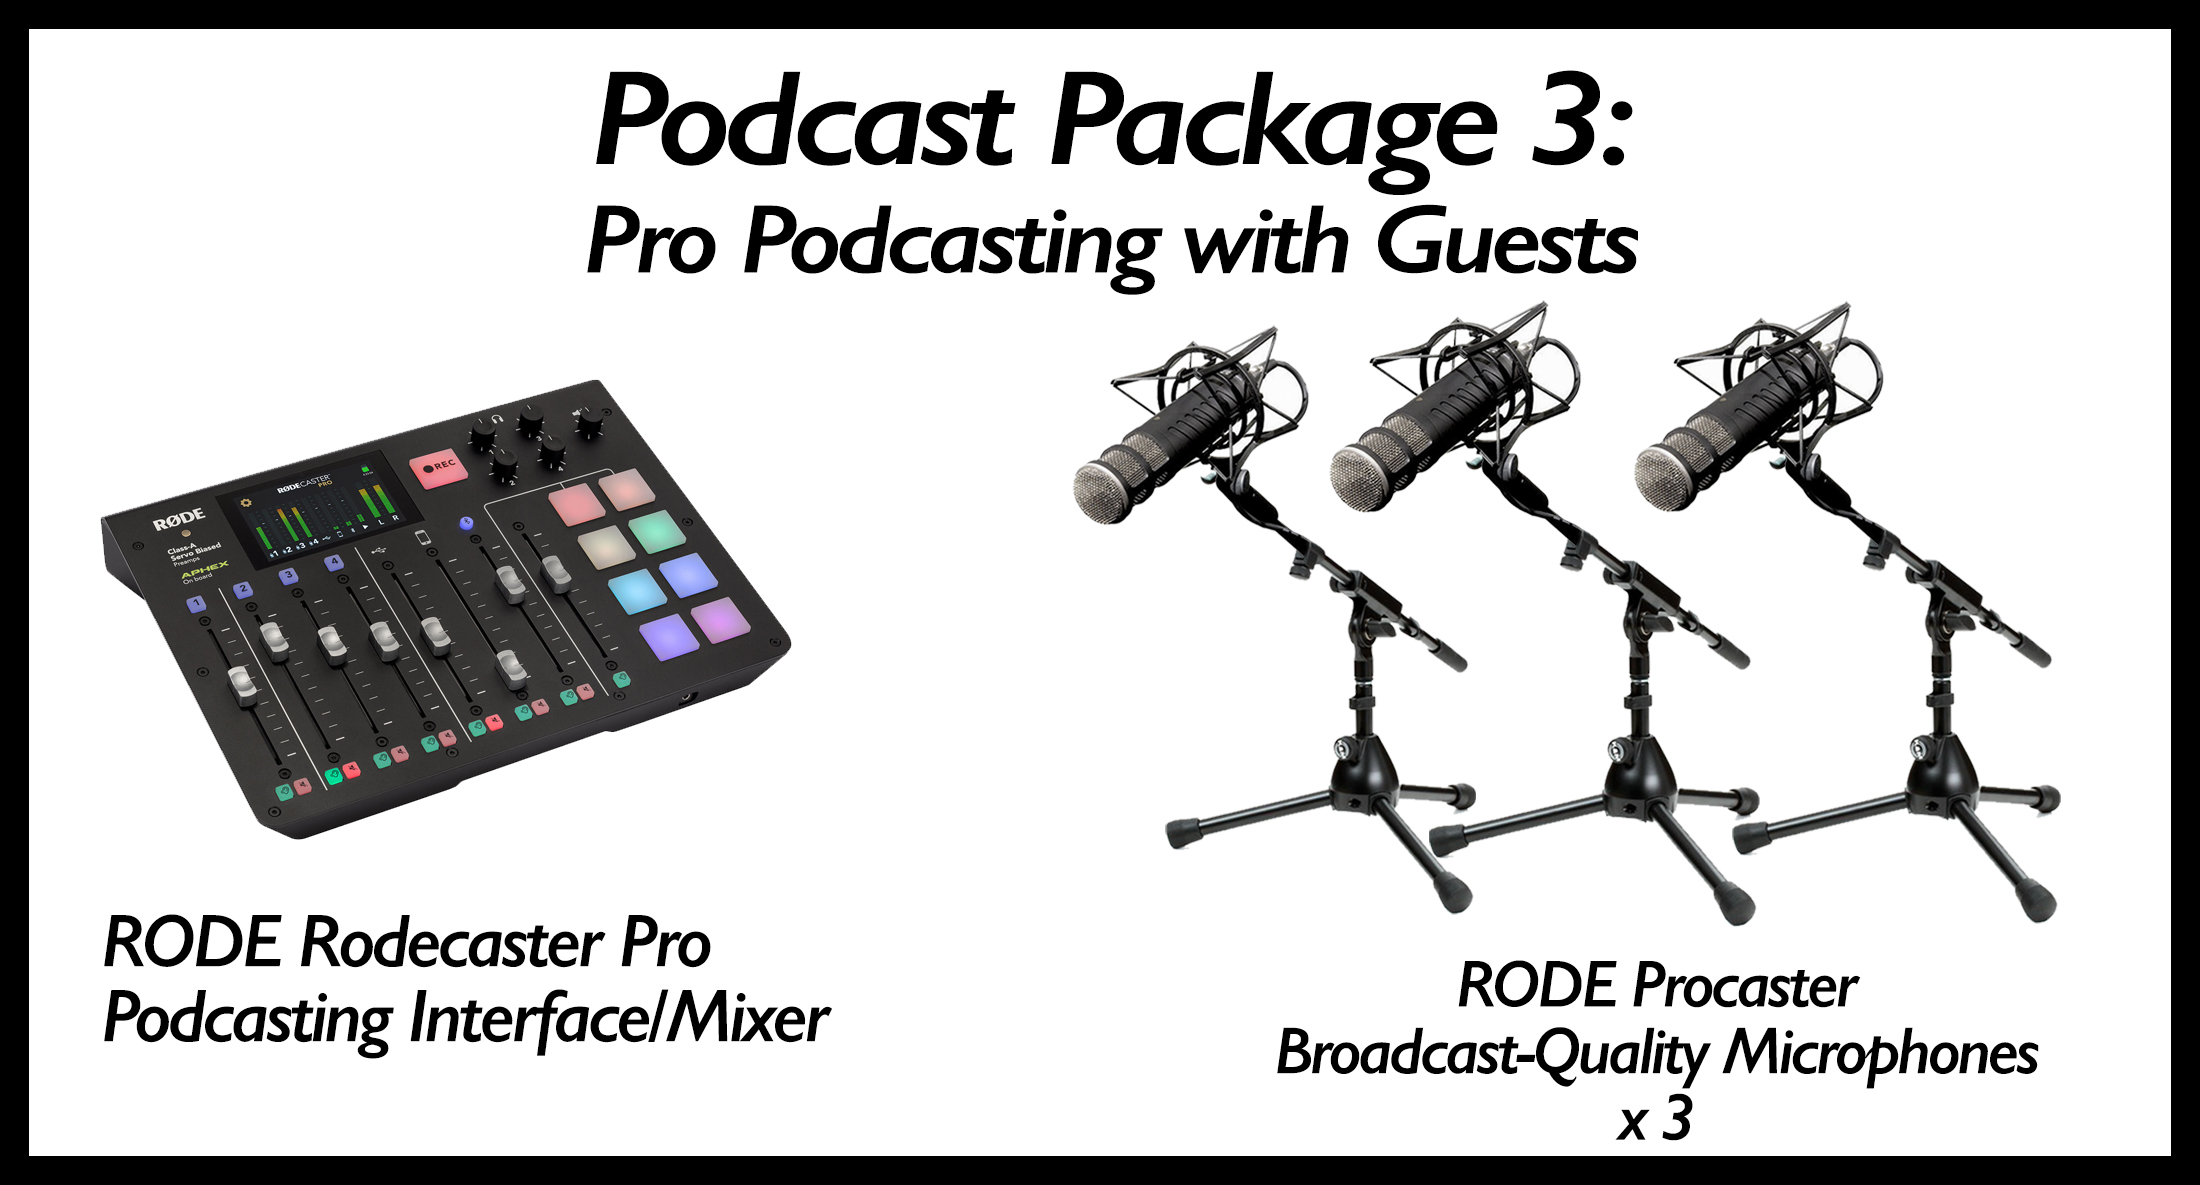 Pro Podcasting with Guests